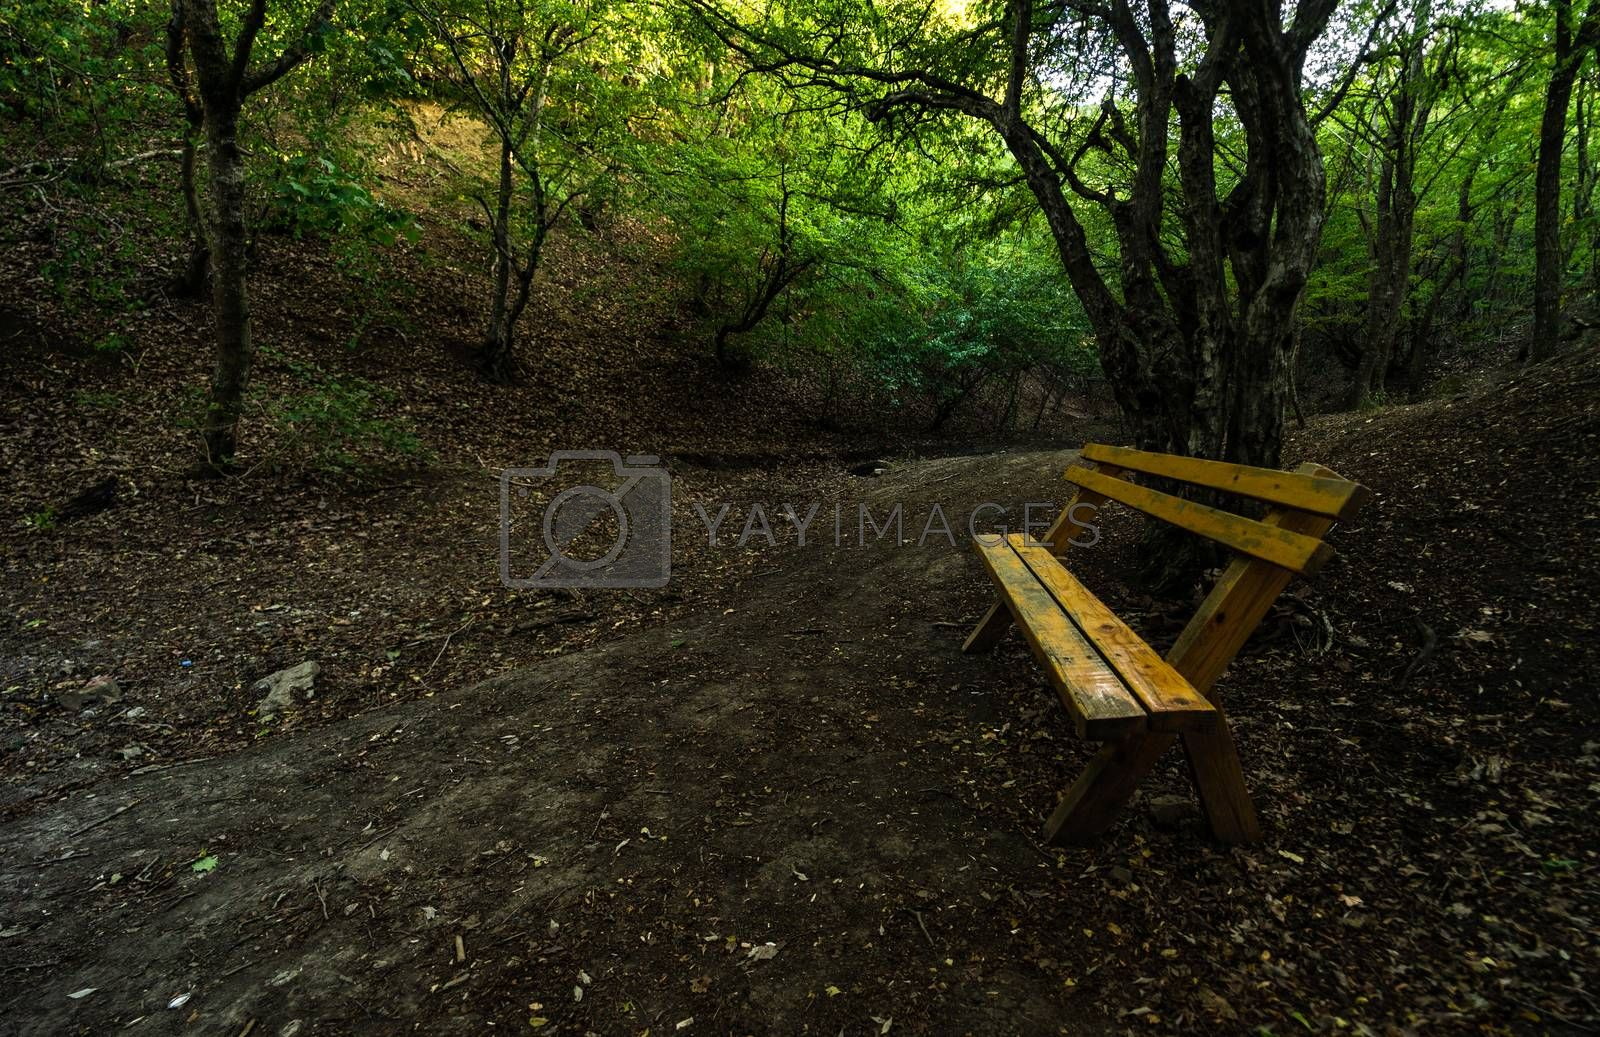 Hiking trail on route from Turtle lake to Mtatsminda is one of the most famous healthy hike trails in Tbilisi, Georgia